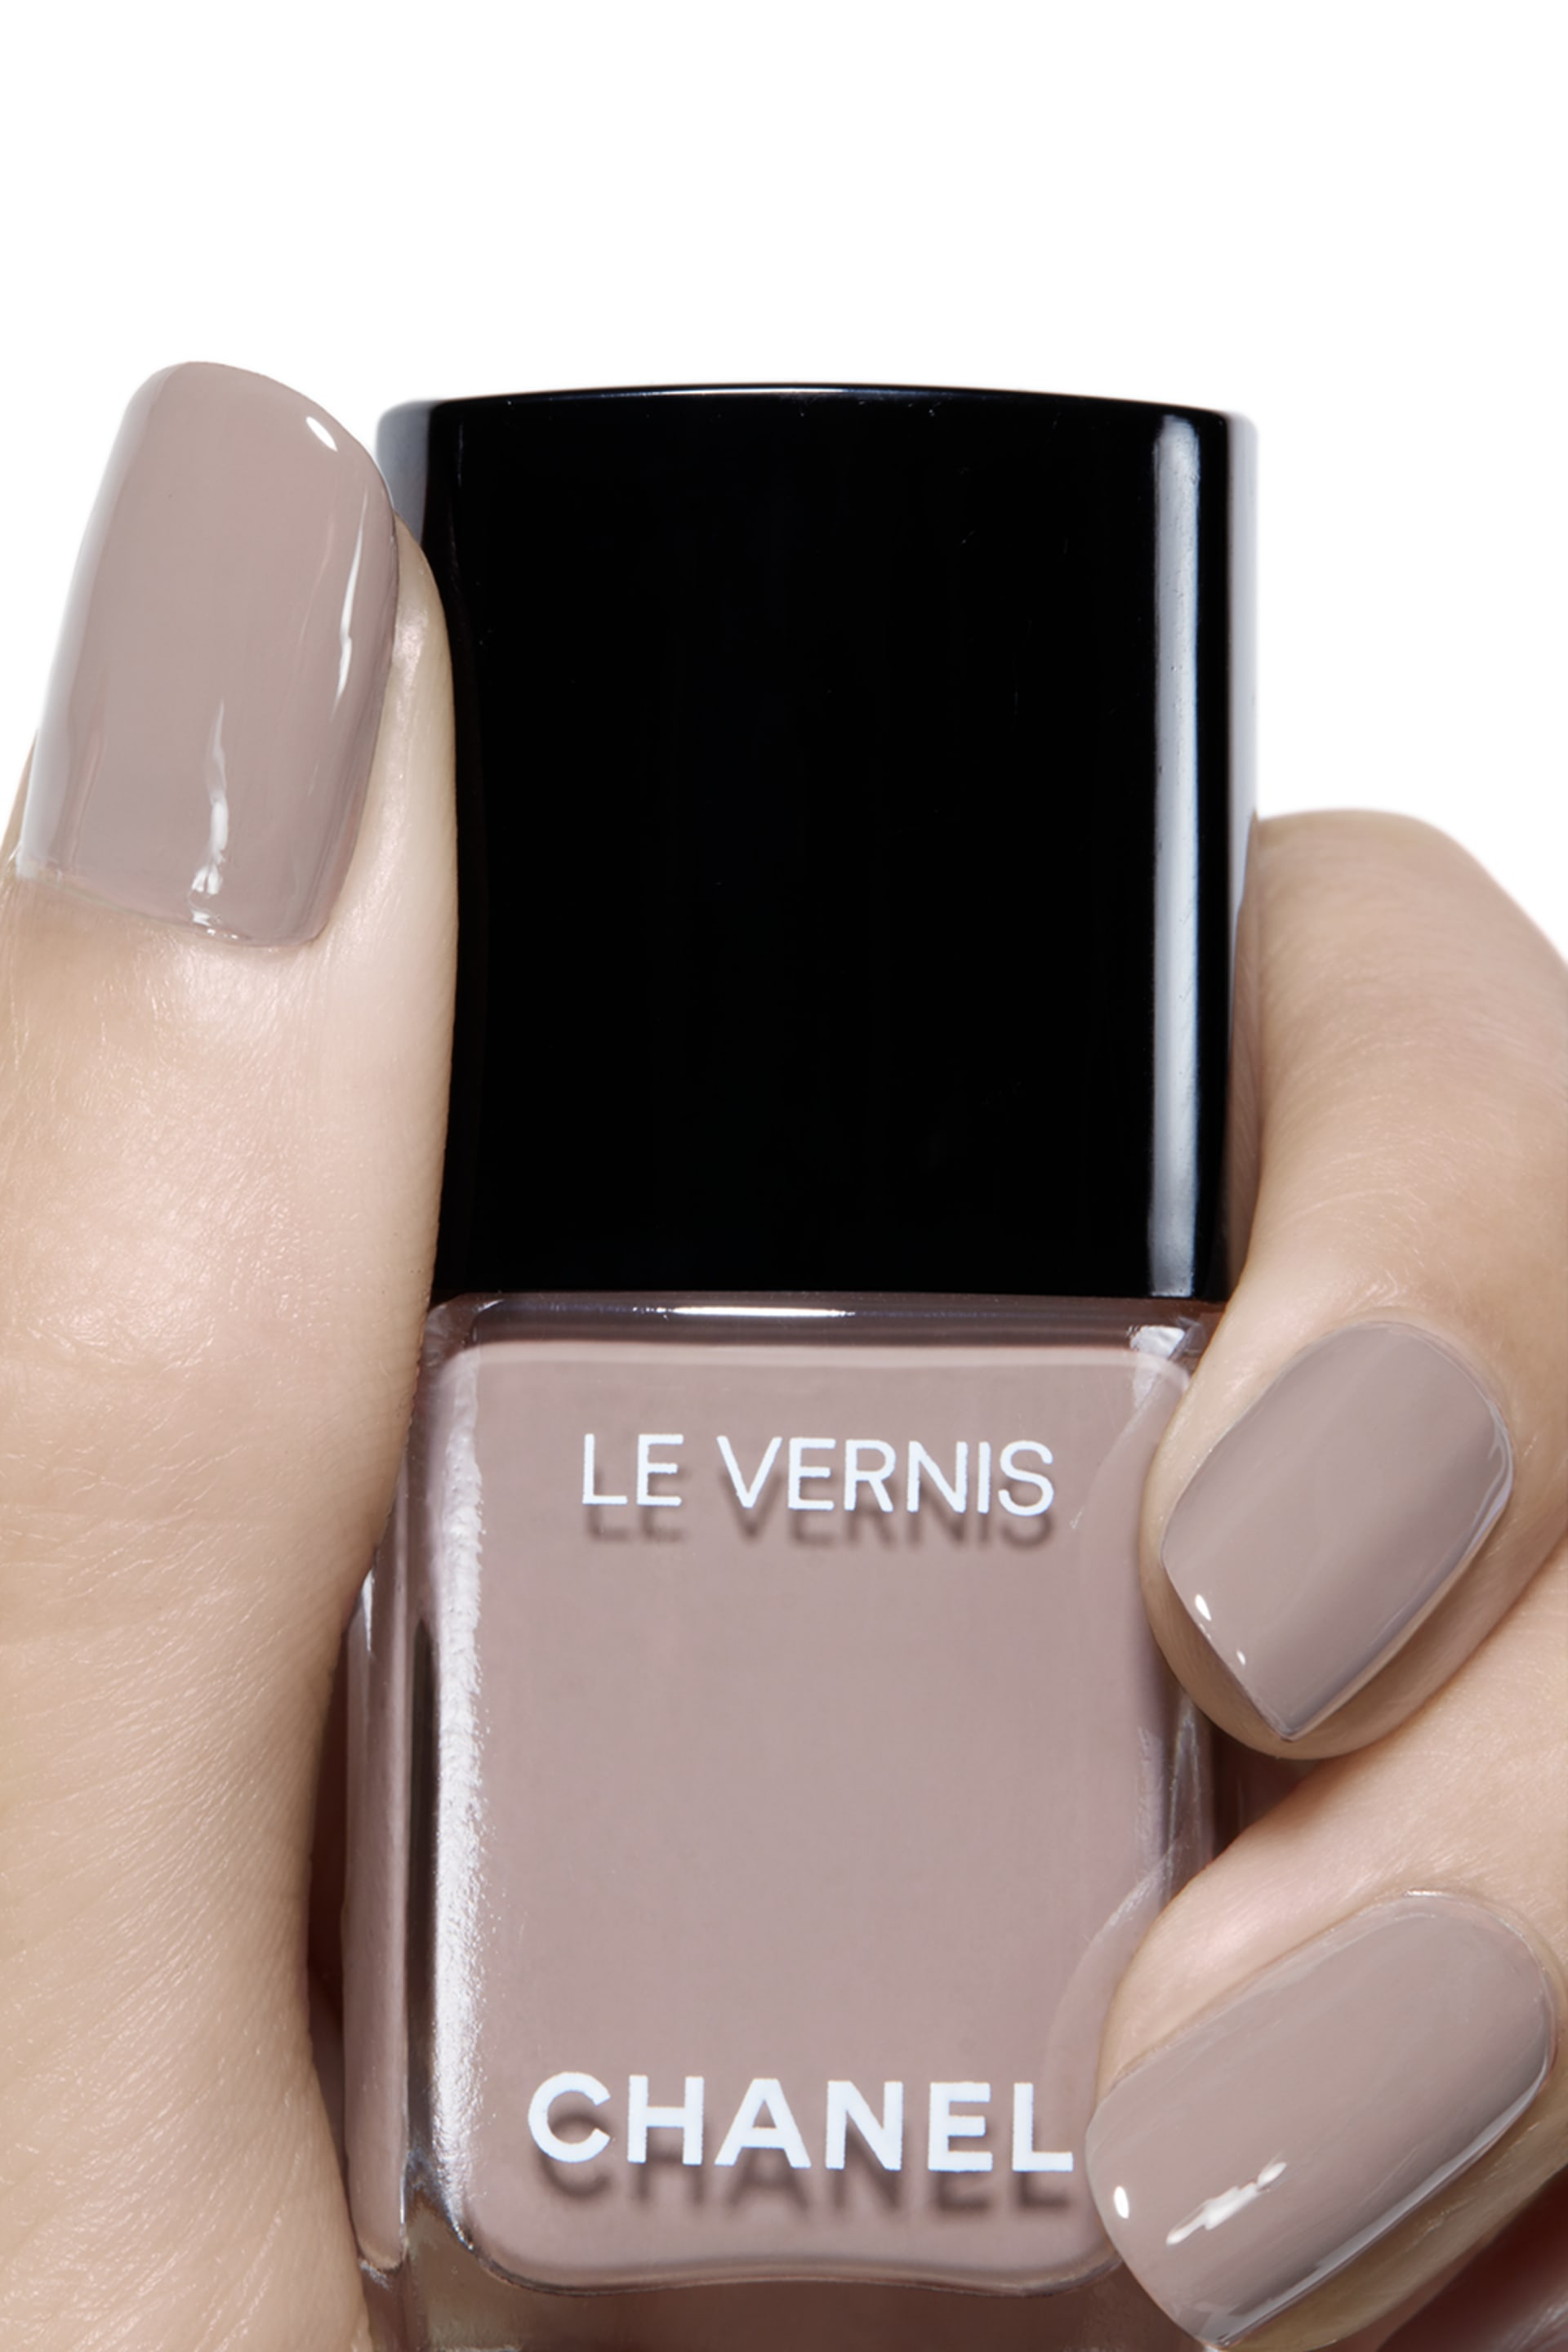 Visuel d'application maquillage 2 - LE VERNIS 578 - NEW DAWN